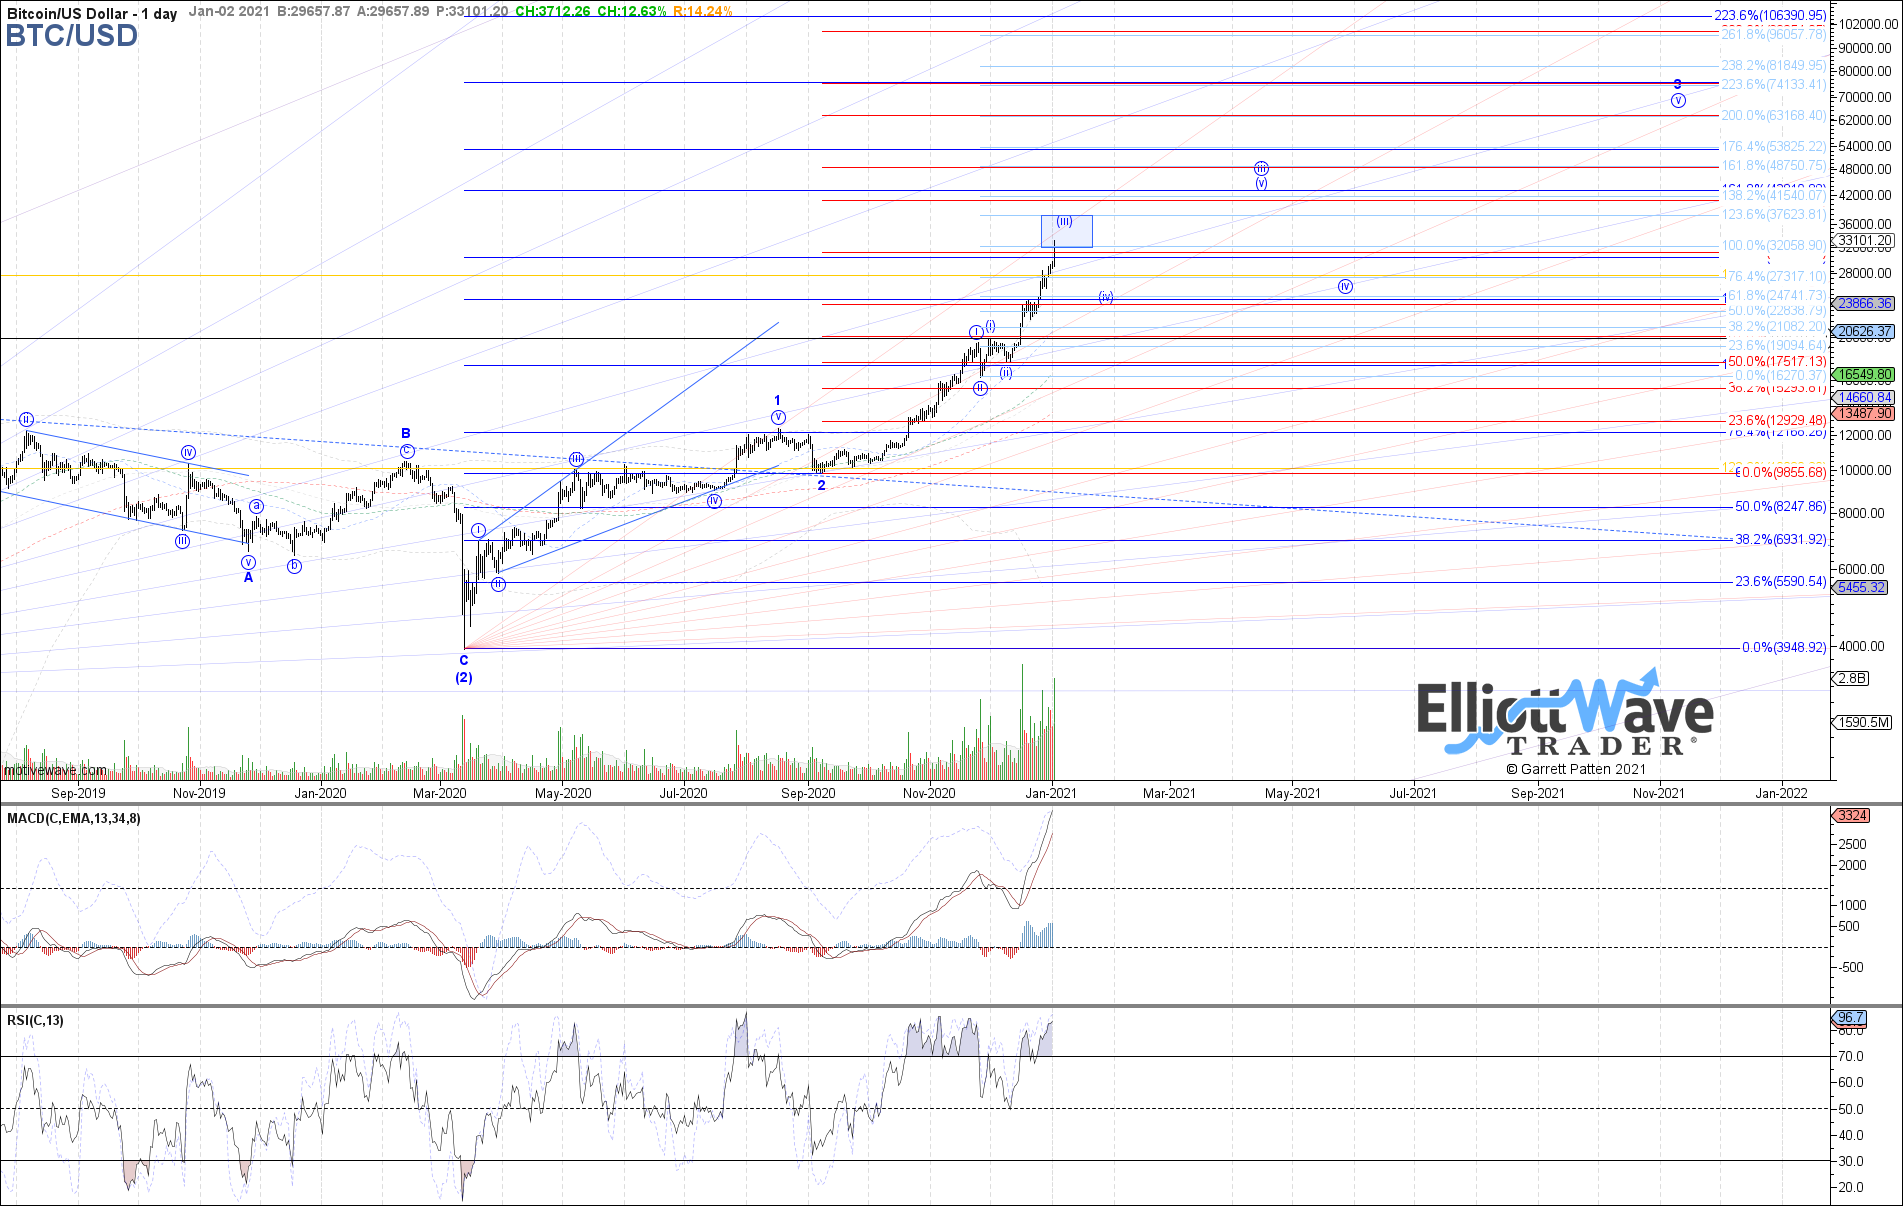 BTCUSD - Primary Analysis - Jan-02 1142 AM (1 day)